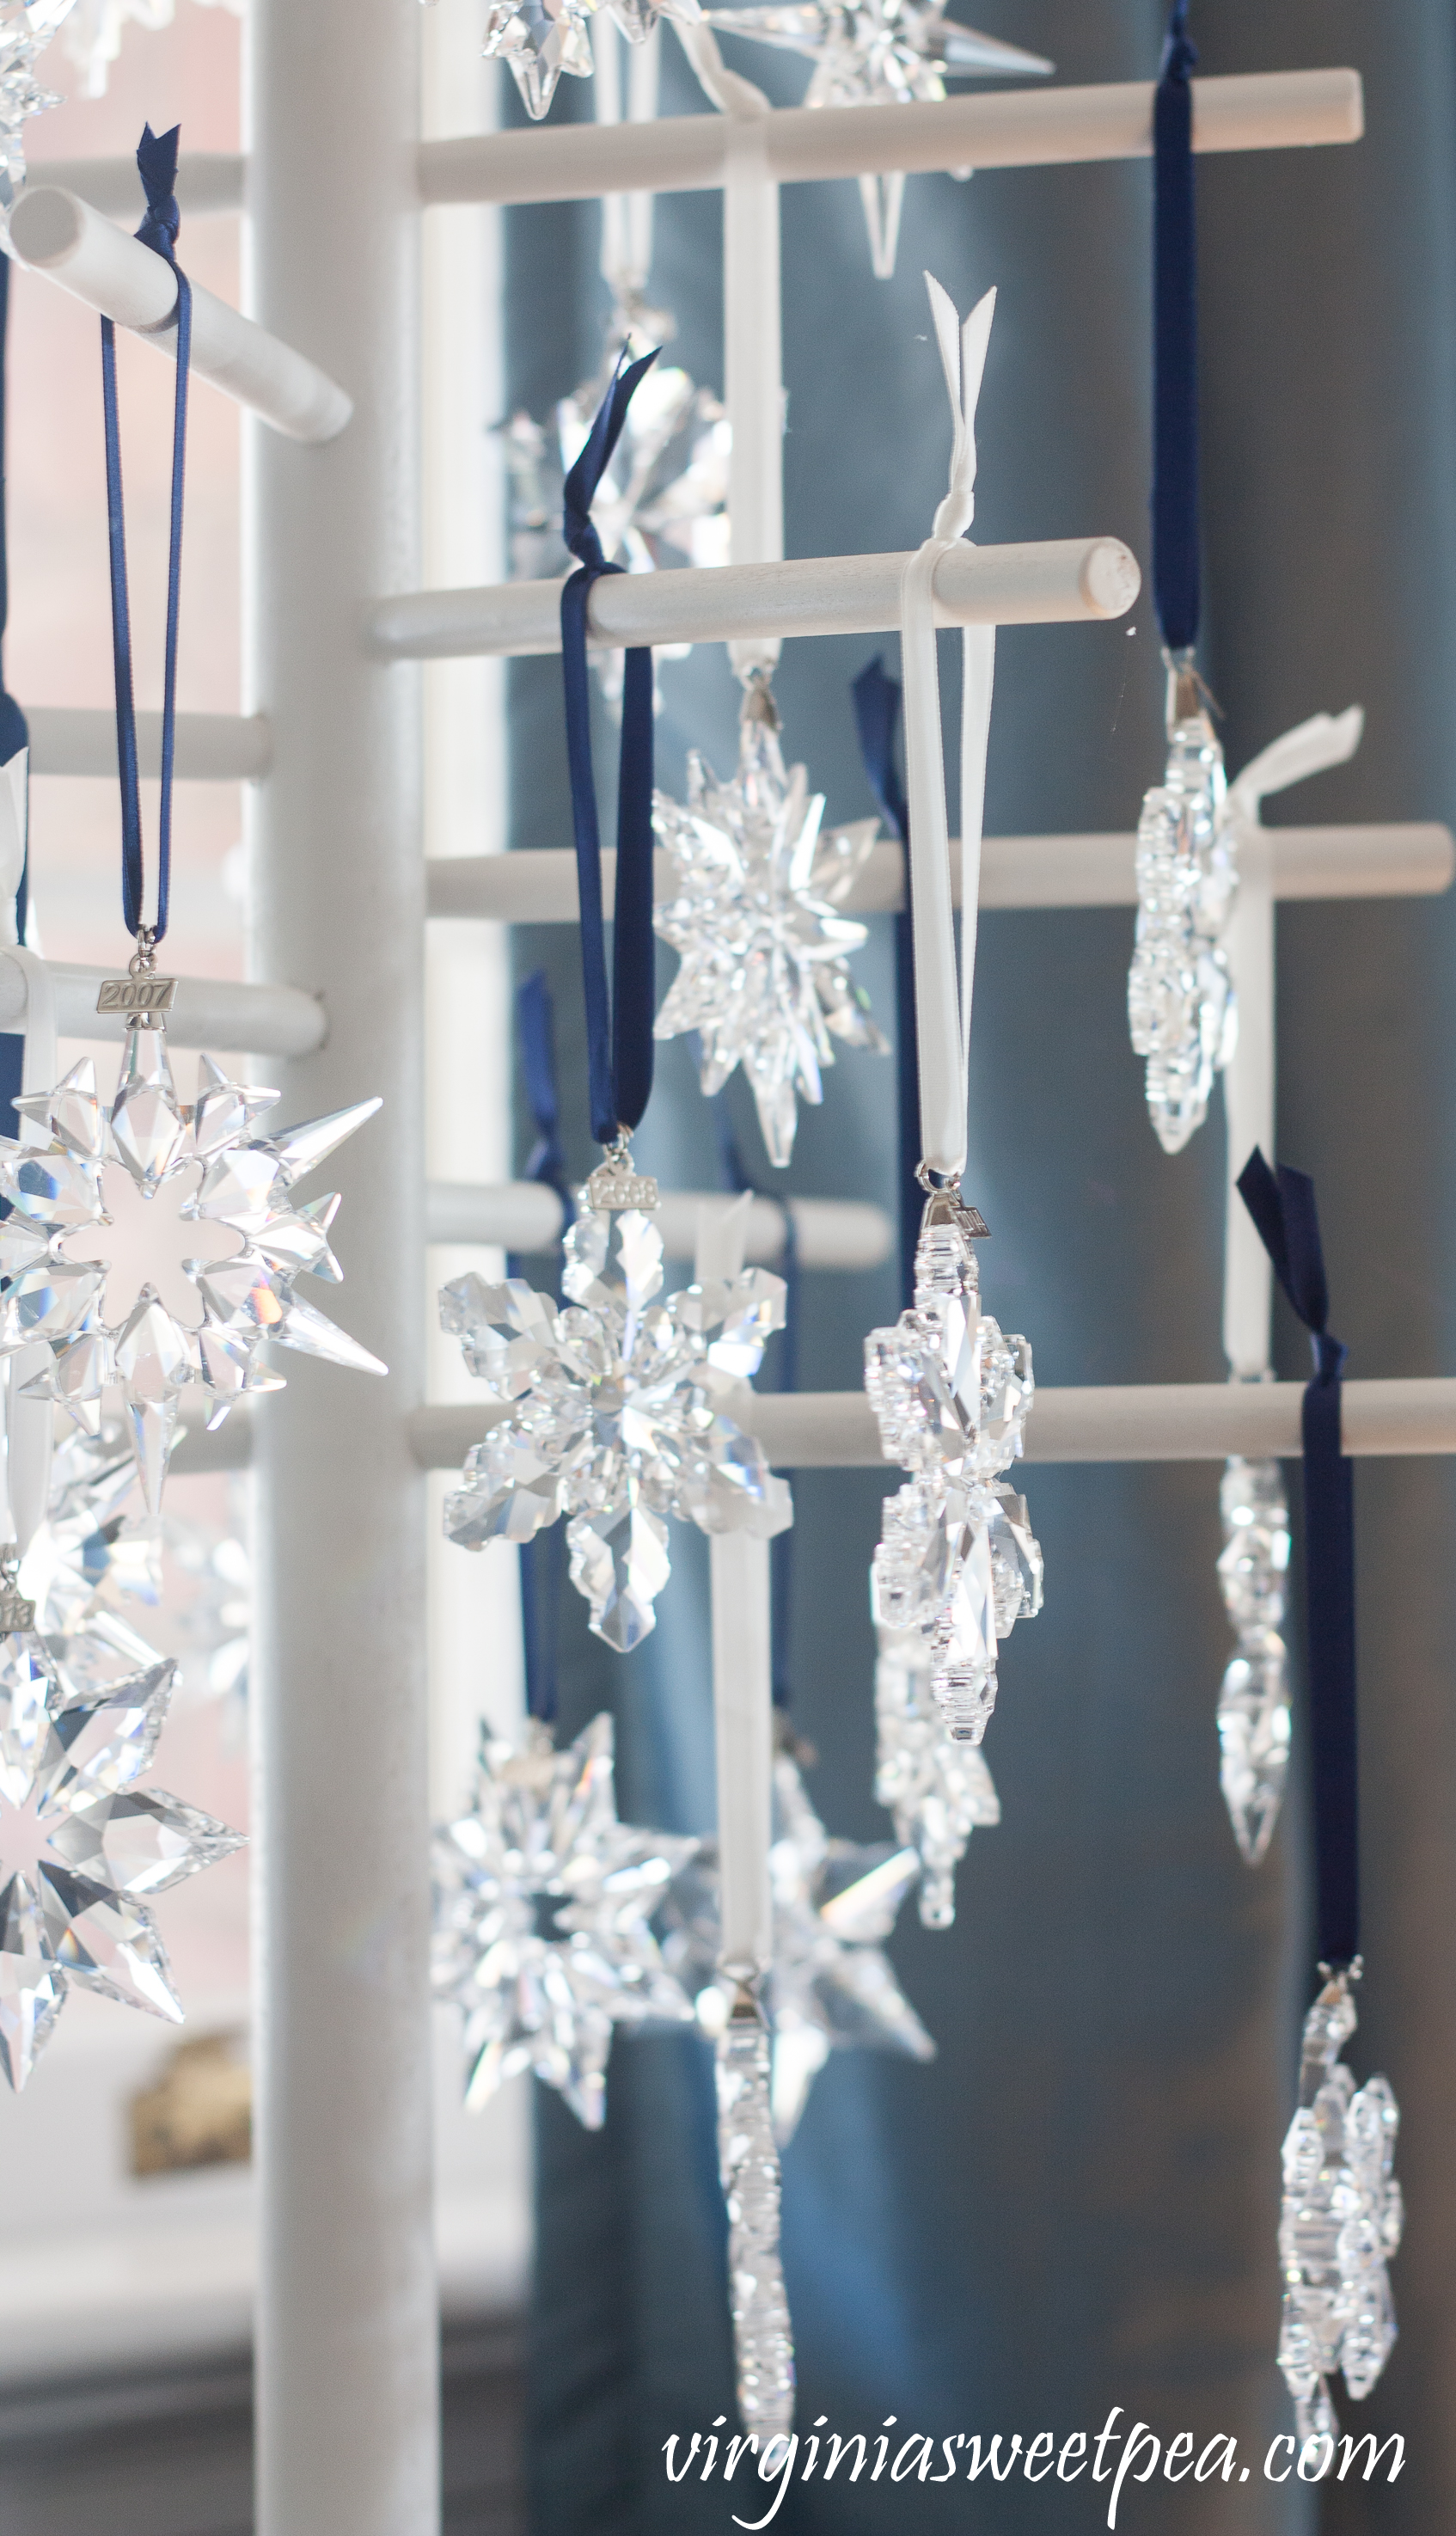 Swarovski Snowflake Ornaments - A collection of snowflakes from 1994 - 2018 is displayed on a wooden tree. #swarovski #swarovskiornaments #swarovskisnowflakeornaments